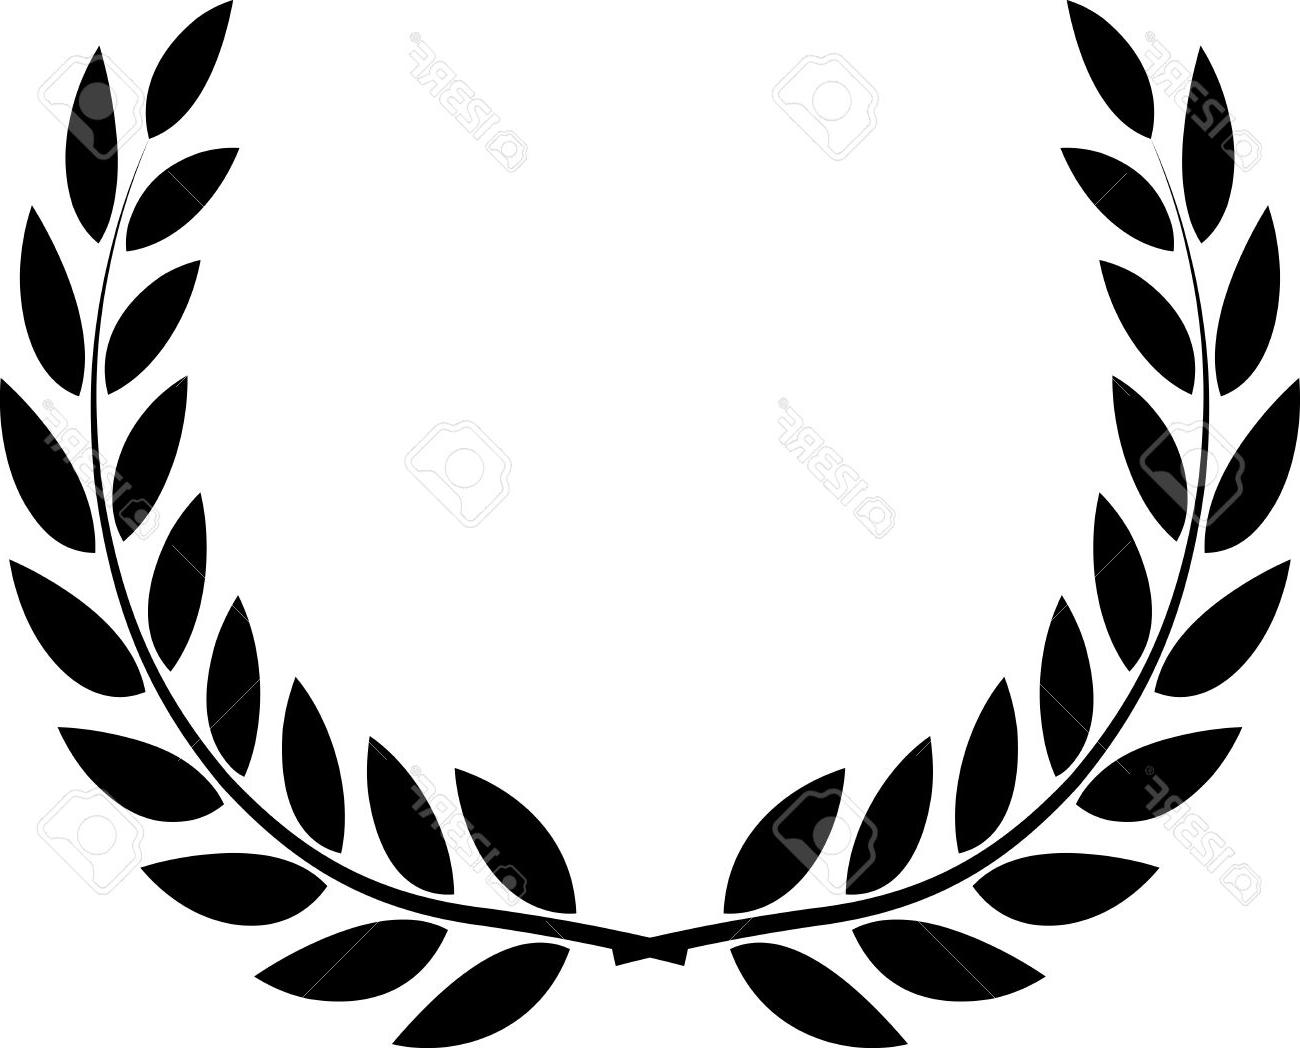 1300x1048 Best Hd Award Wreath Vector Library Free Vector Art, Images